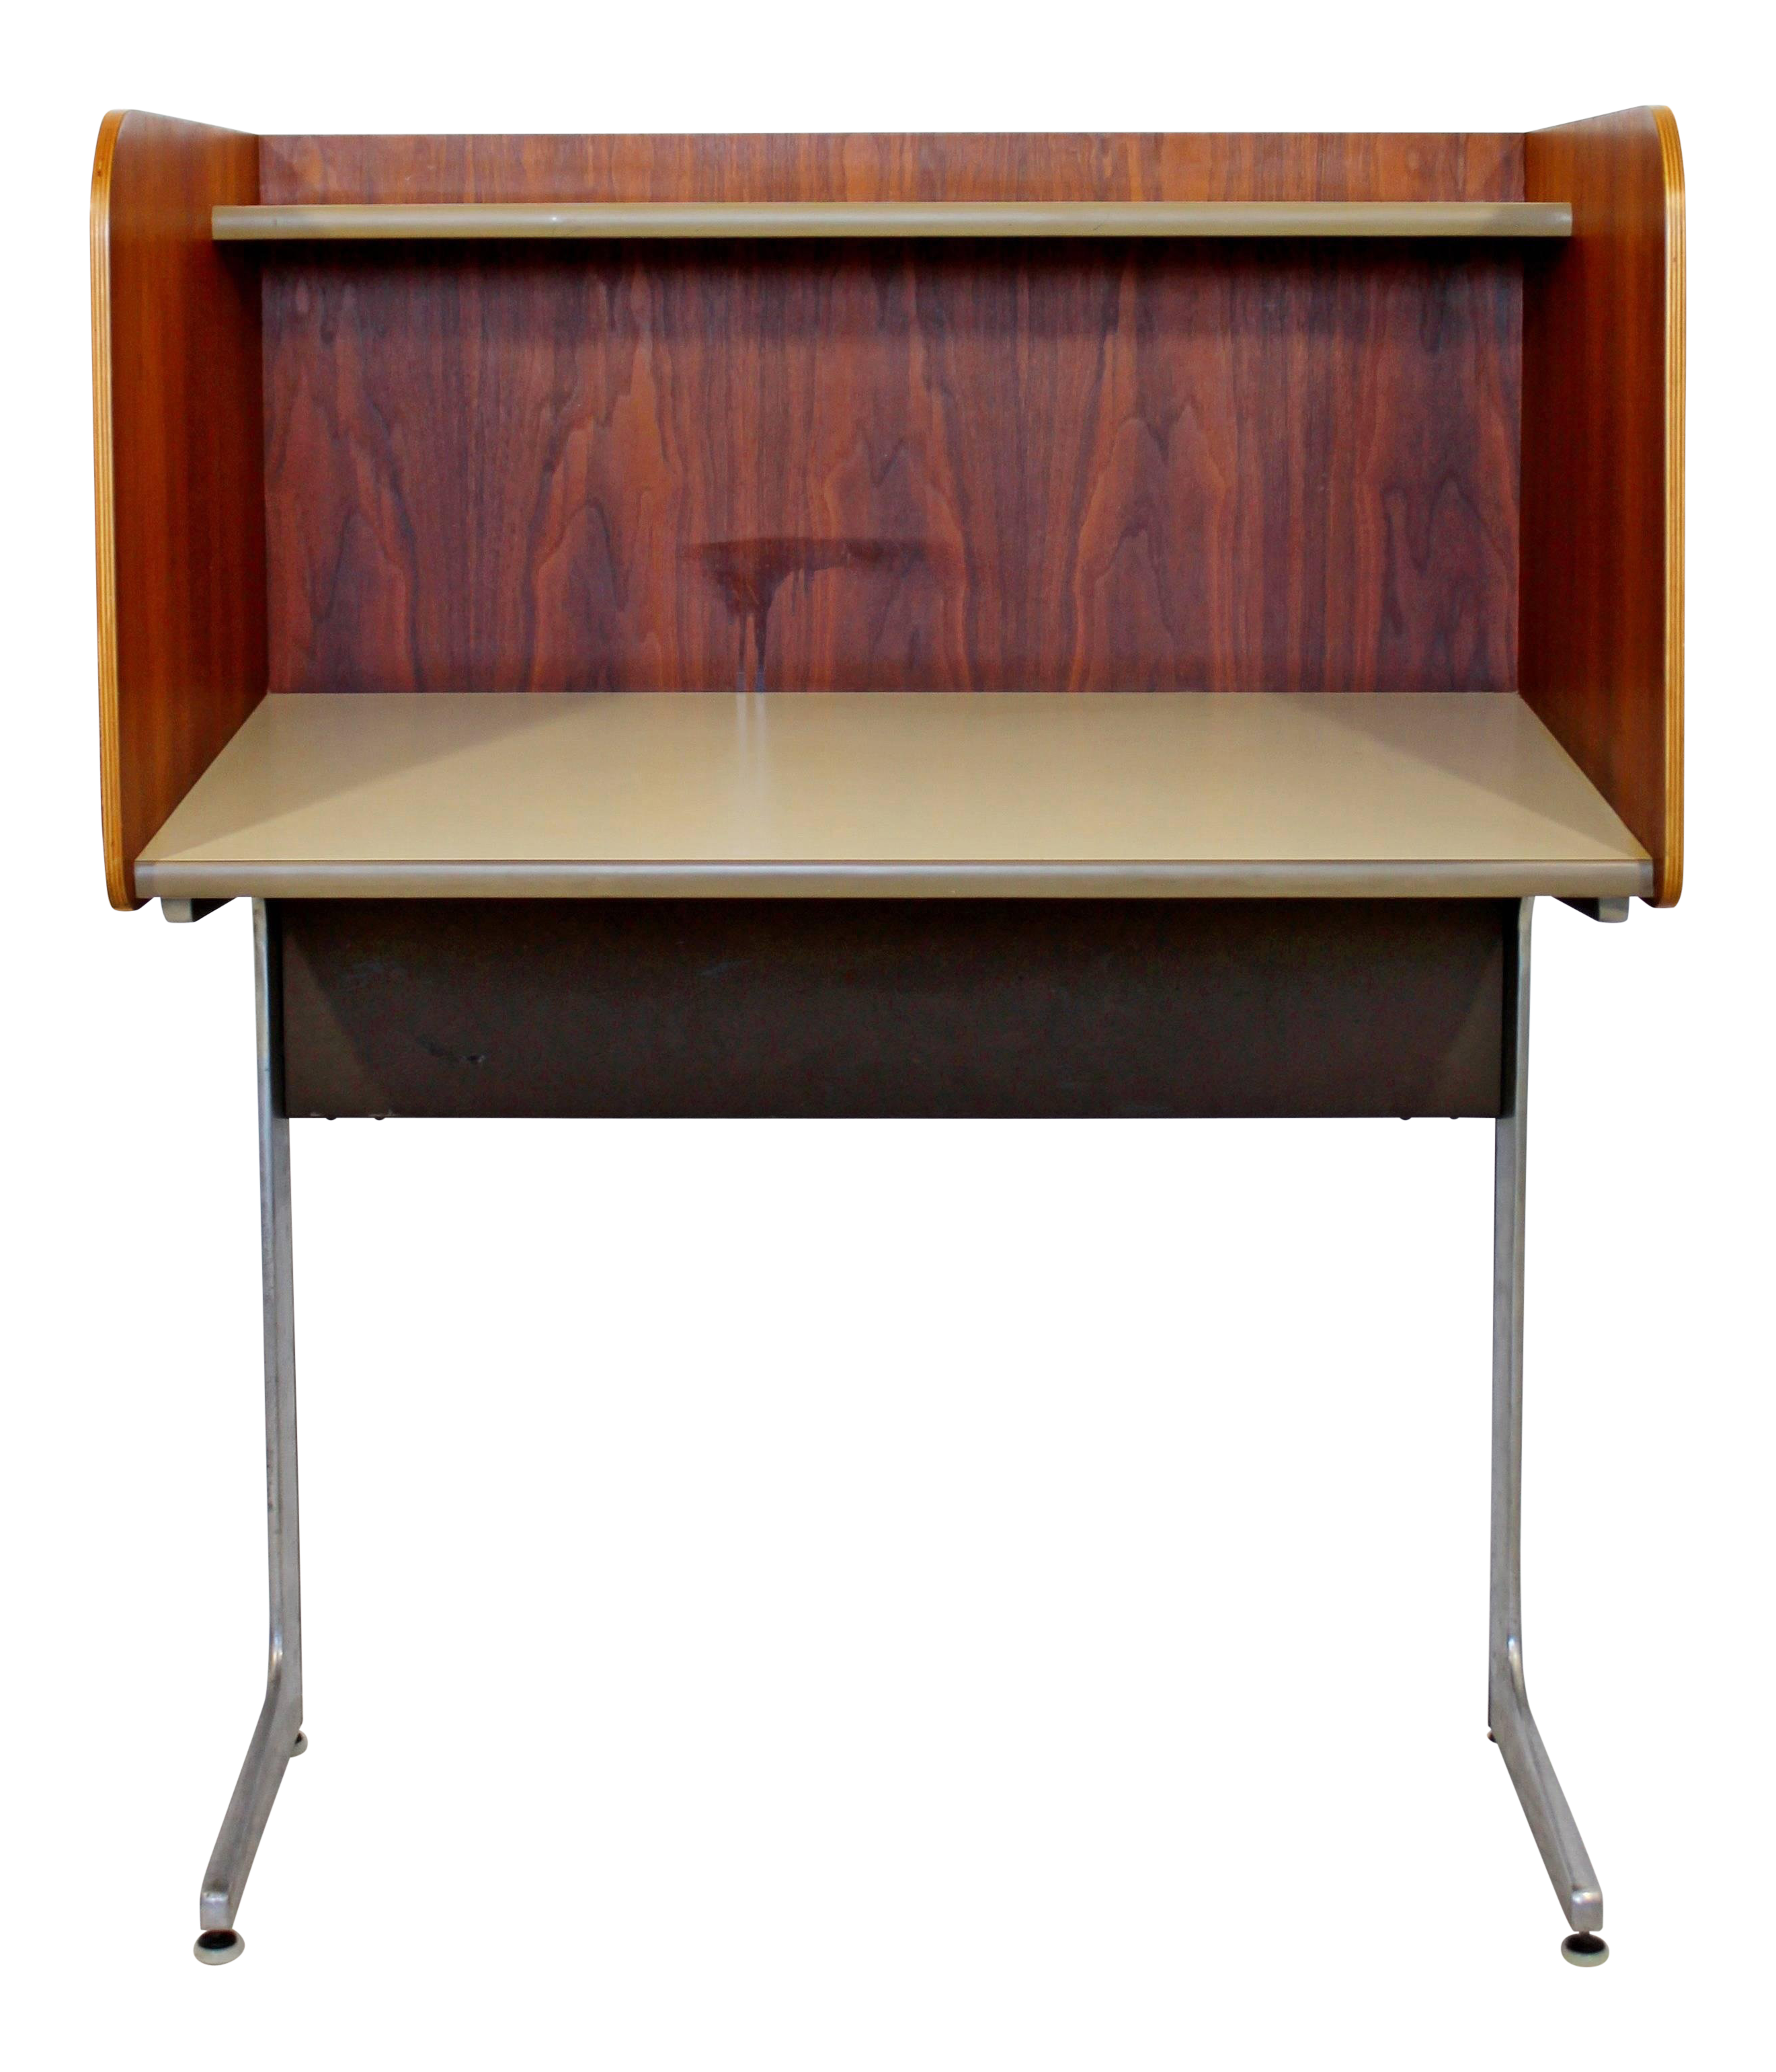 1960s Mid Century Modern Herman Miller Upright Privacy Desk